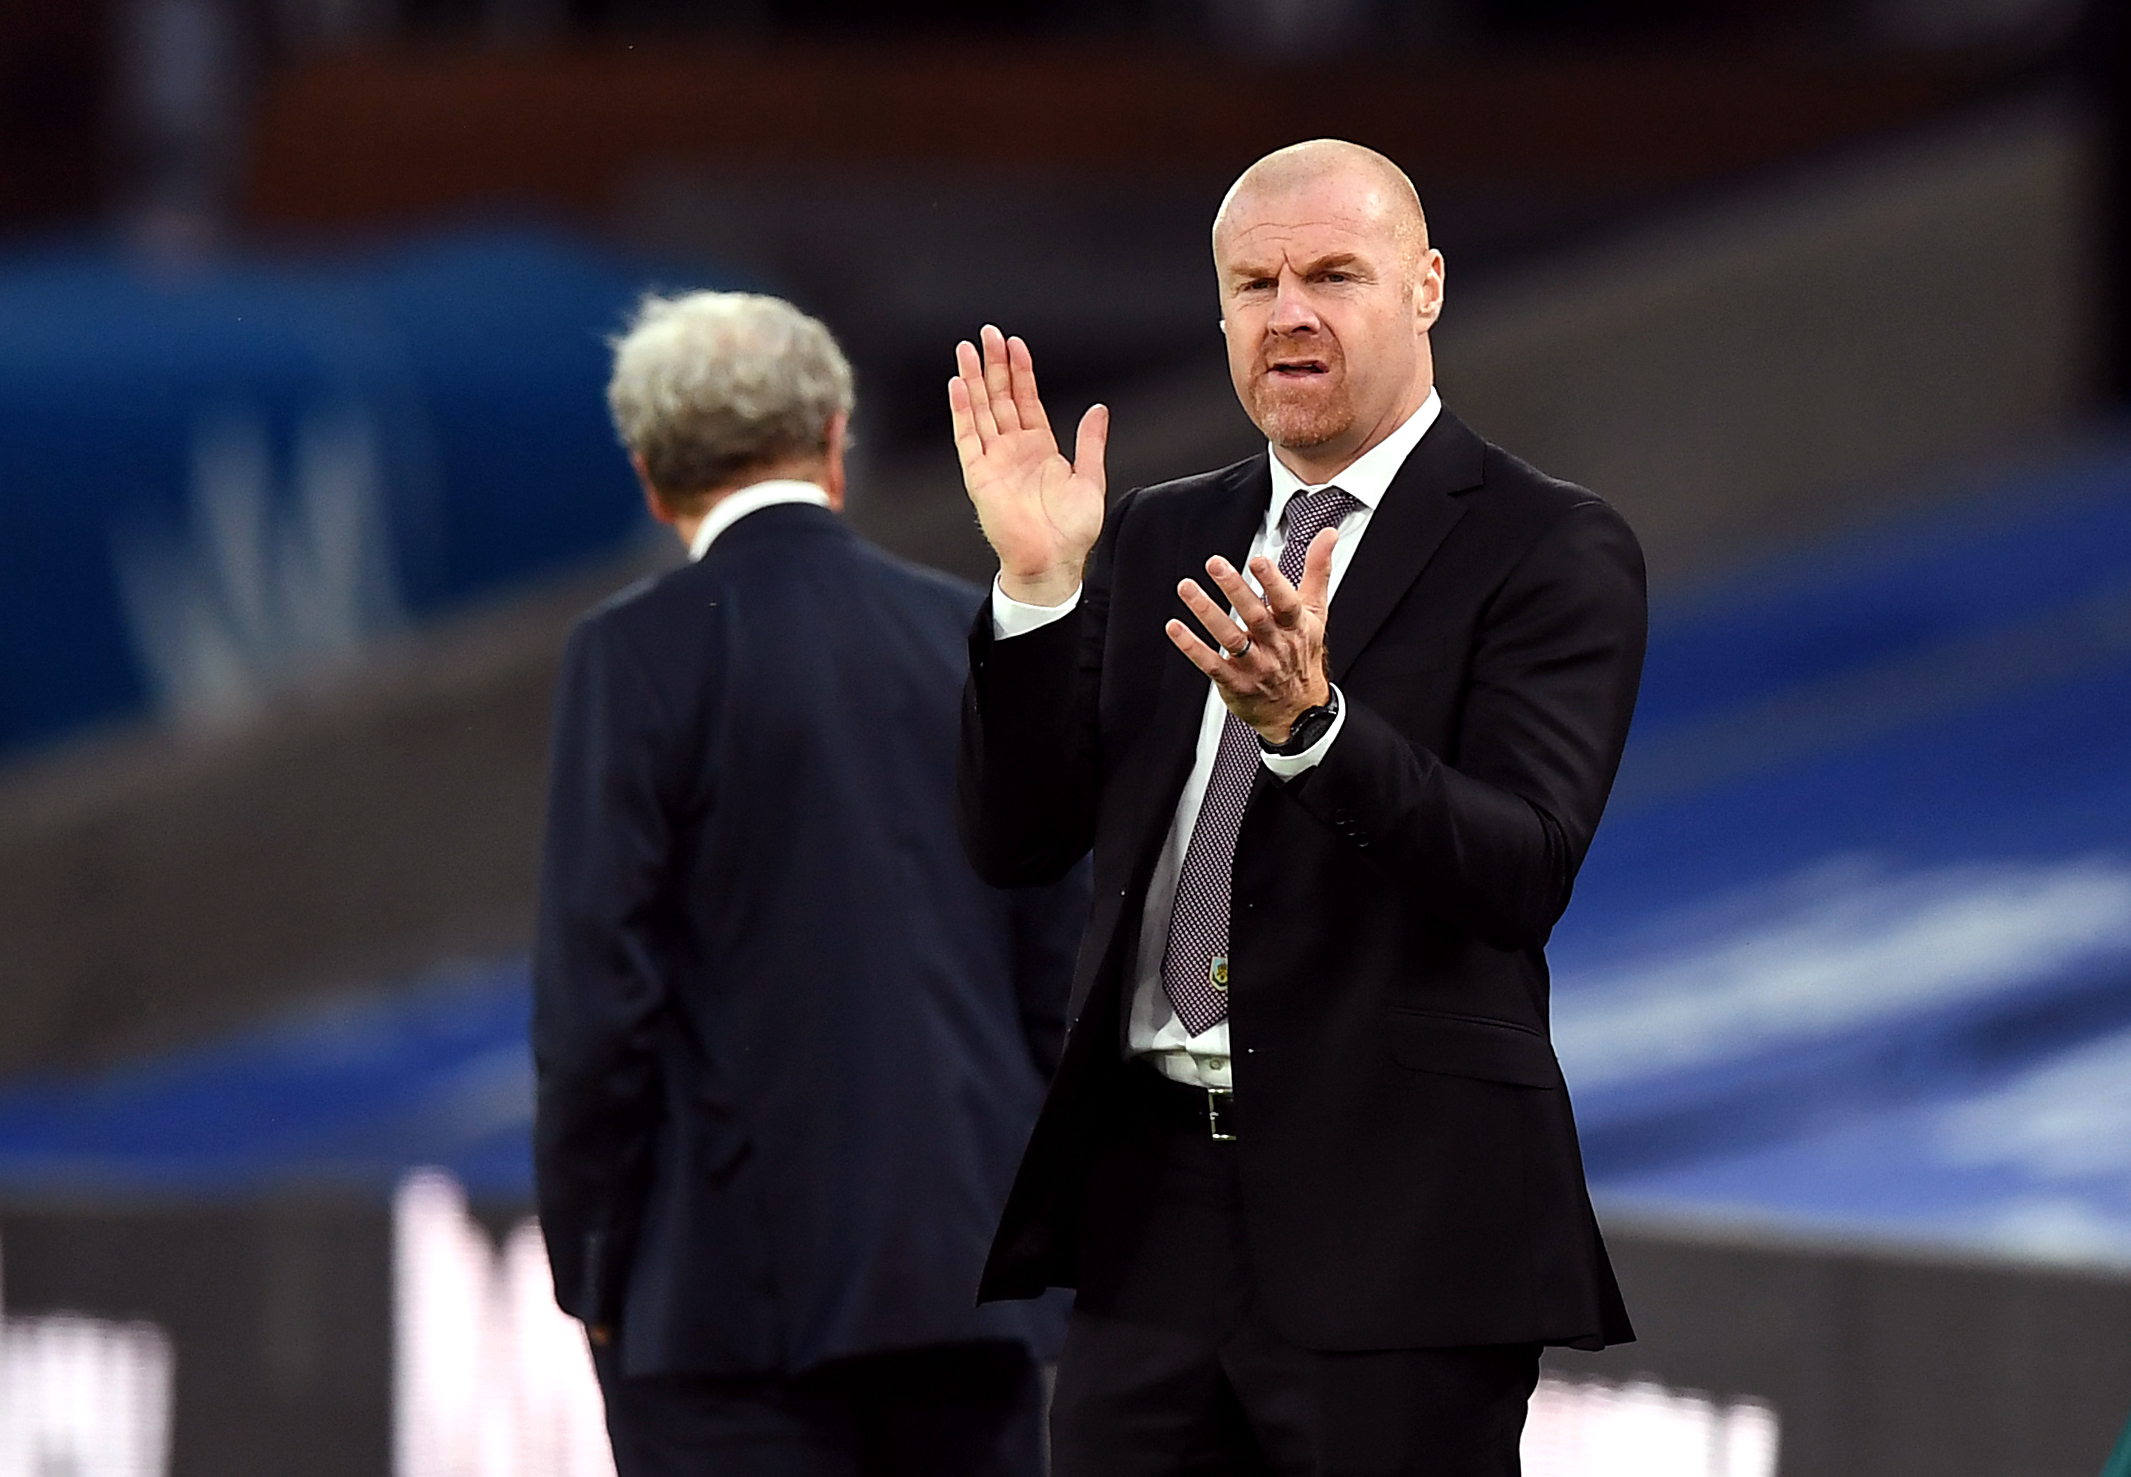 Sean Dyche hails one of best results as Burnley boss after Crystal Palace win